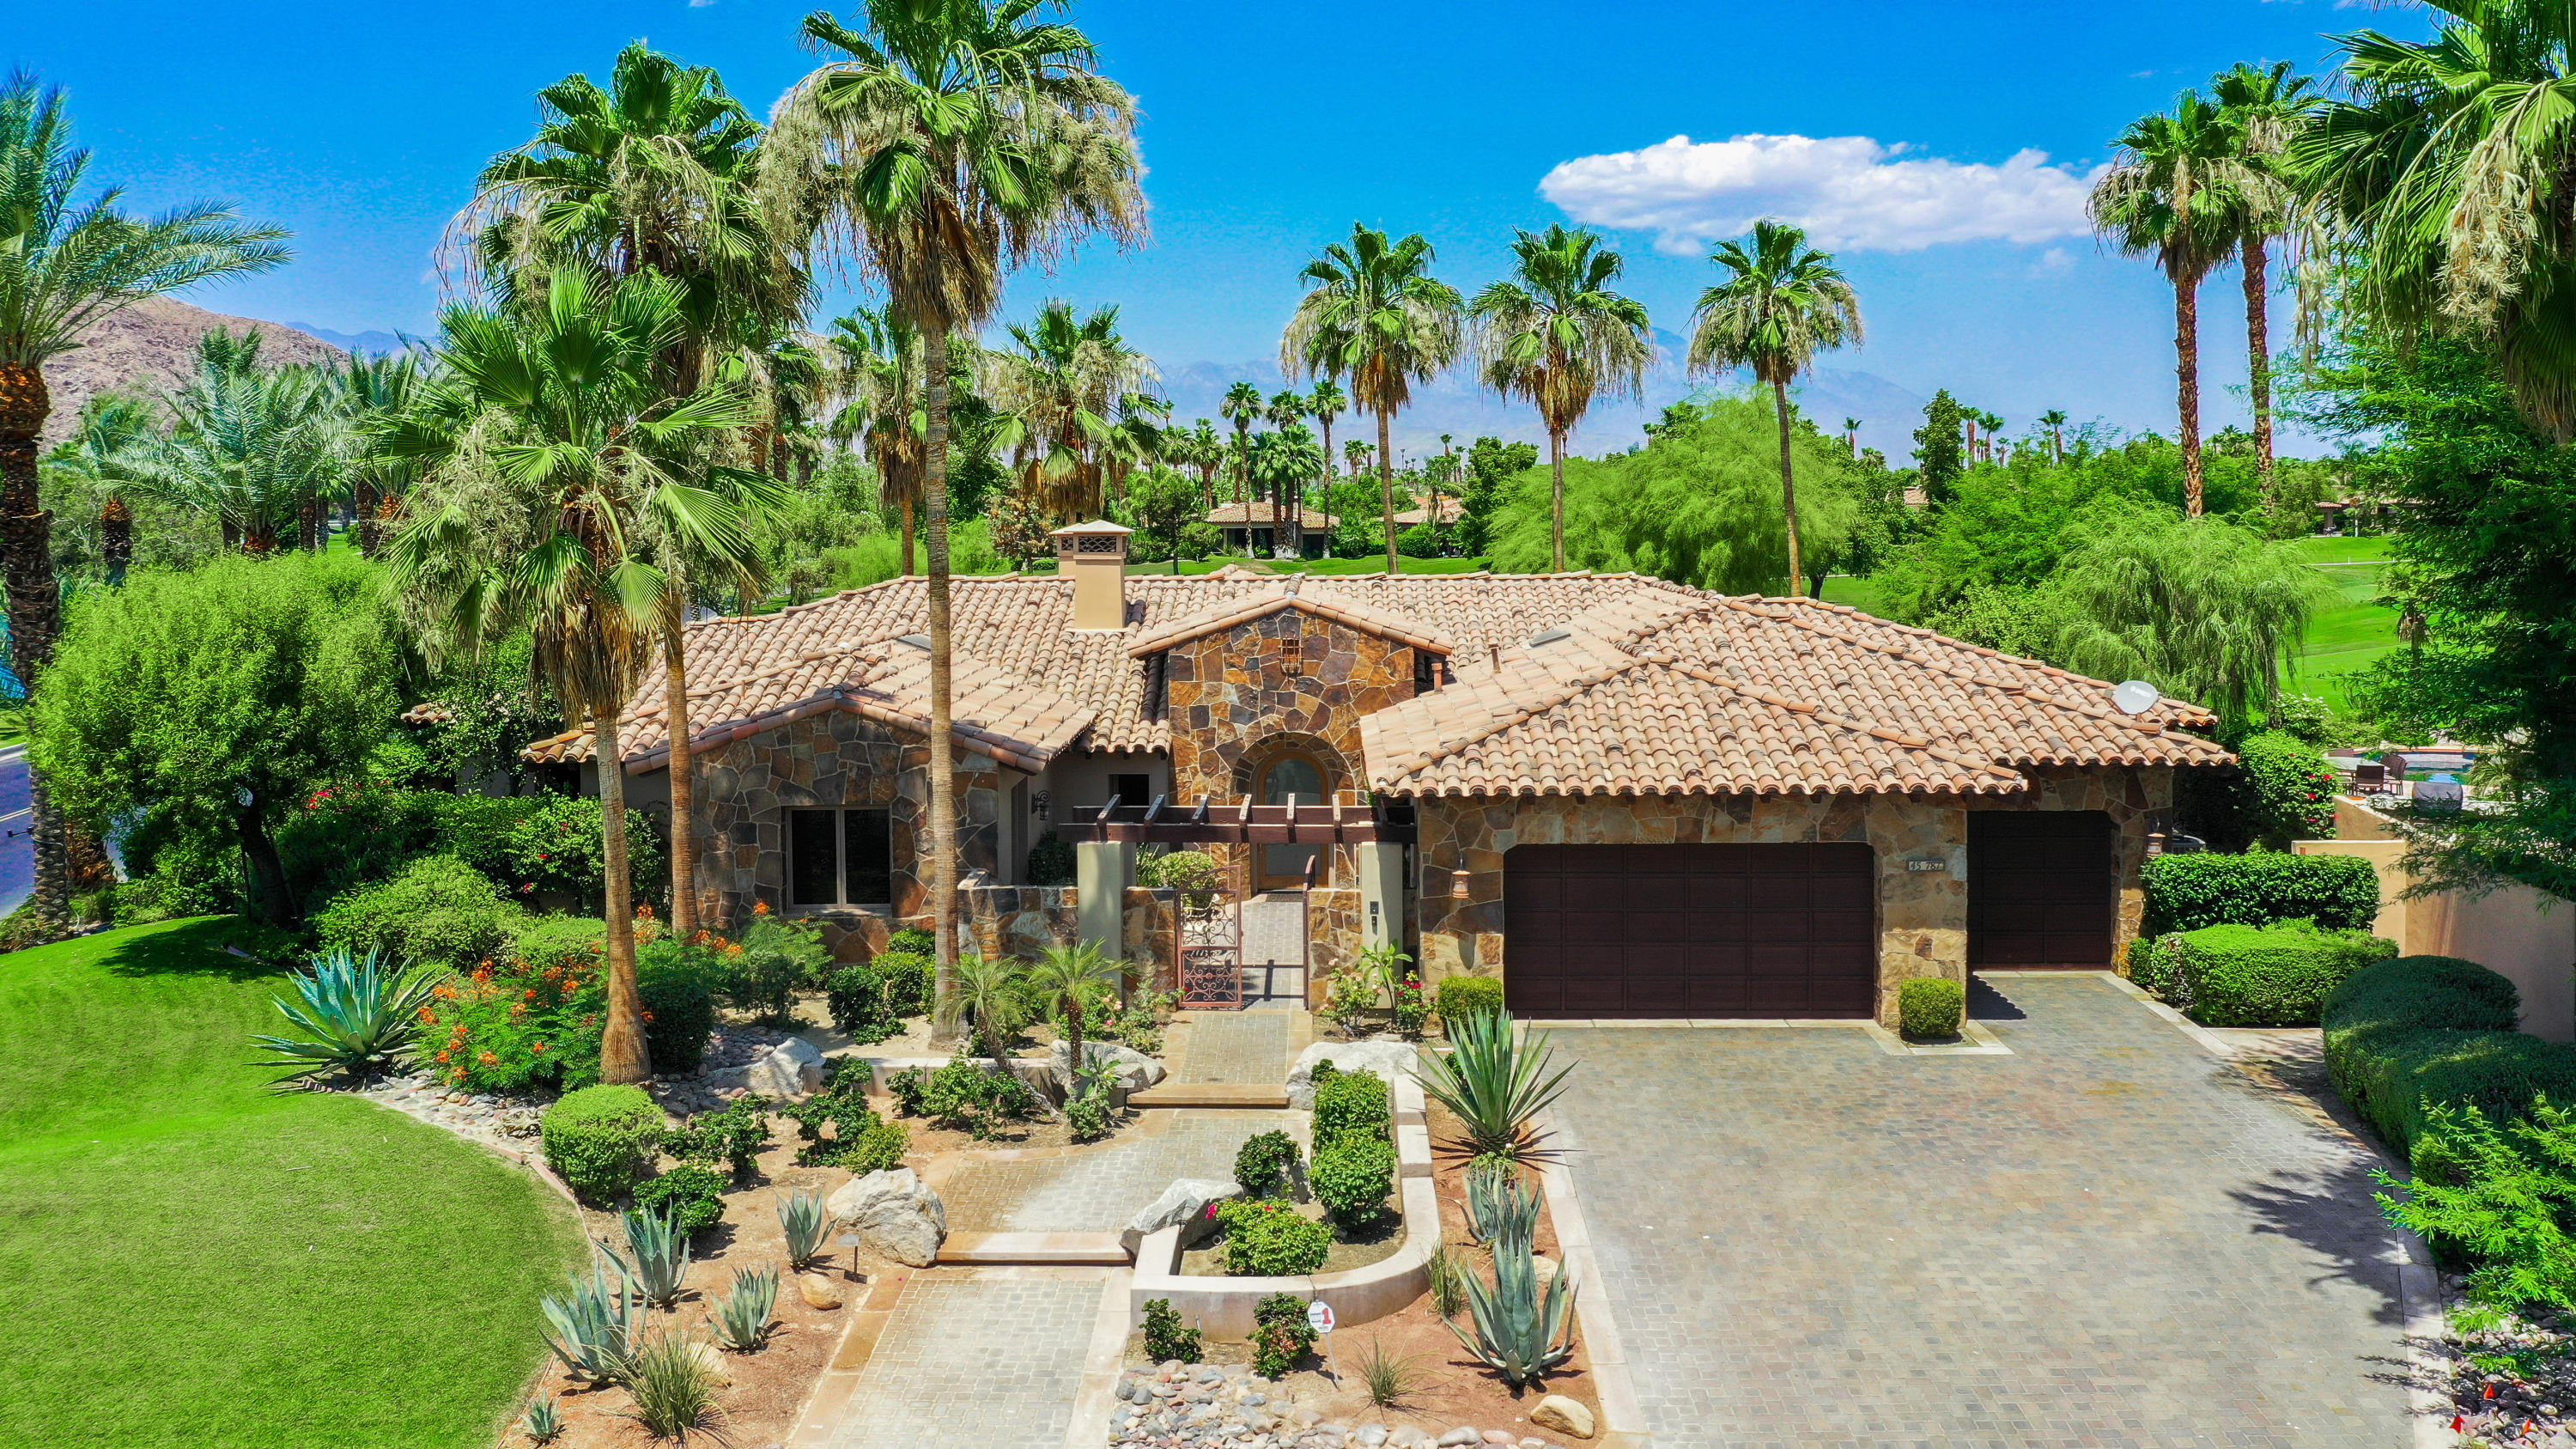 Fabulous Ministrelli semi-custom home sold furnished, west facing, triple fairway and mountain Views located within prestigious Villaggio community  at Indian Wells CC.  Built in 2004, Tuscany inspired 3448 Sq. Ft. home has 3 Bedrooms with en-suite Baths and walk-in closets, 3.5 Baths, plus spacious   4th Bedroom / Office/Den, 2 fireplaces,2 car plus golf cart garage & separate entry Guest Casita on 13,939 Sq. Ft. choice Corner lot. Pavered driveway, walkway, and inviting gated Courtyard. Double door glass Front entry into Great Room with high ceilings and panoramic mountain, fairway and pool views.  Travertine pave style stone floors, custom carpets in bedrooms, custom shades and shutters. Great Room features fireplace and media center with spectacular mountain and fairway views. Exceptional Wet Bar with storage, bar refrigerator, and bar seating.  Open Gourmet Kitchen with views has wine room, large pantry, granite countertops, stainless appliances and big Kitchen Island.  Private Master Suite boasts views, private patio and 2 walk-in custom closets. Spacious Master Bath has jet tub, travertine countertops and glass shower, dual sinks plus vanity. Outdoors has gorgeous views and sunsets, pebble tech pool and spa, covered patio with built-in fireplace, and BBQ island which all embrace this desert paradise!